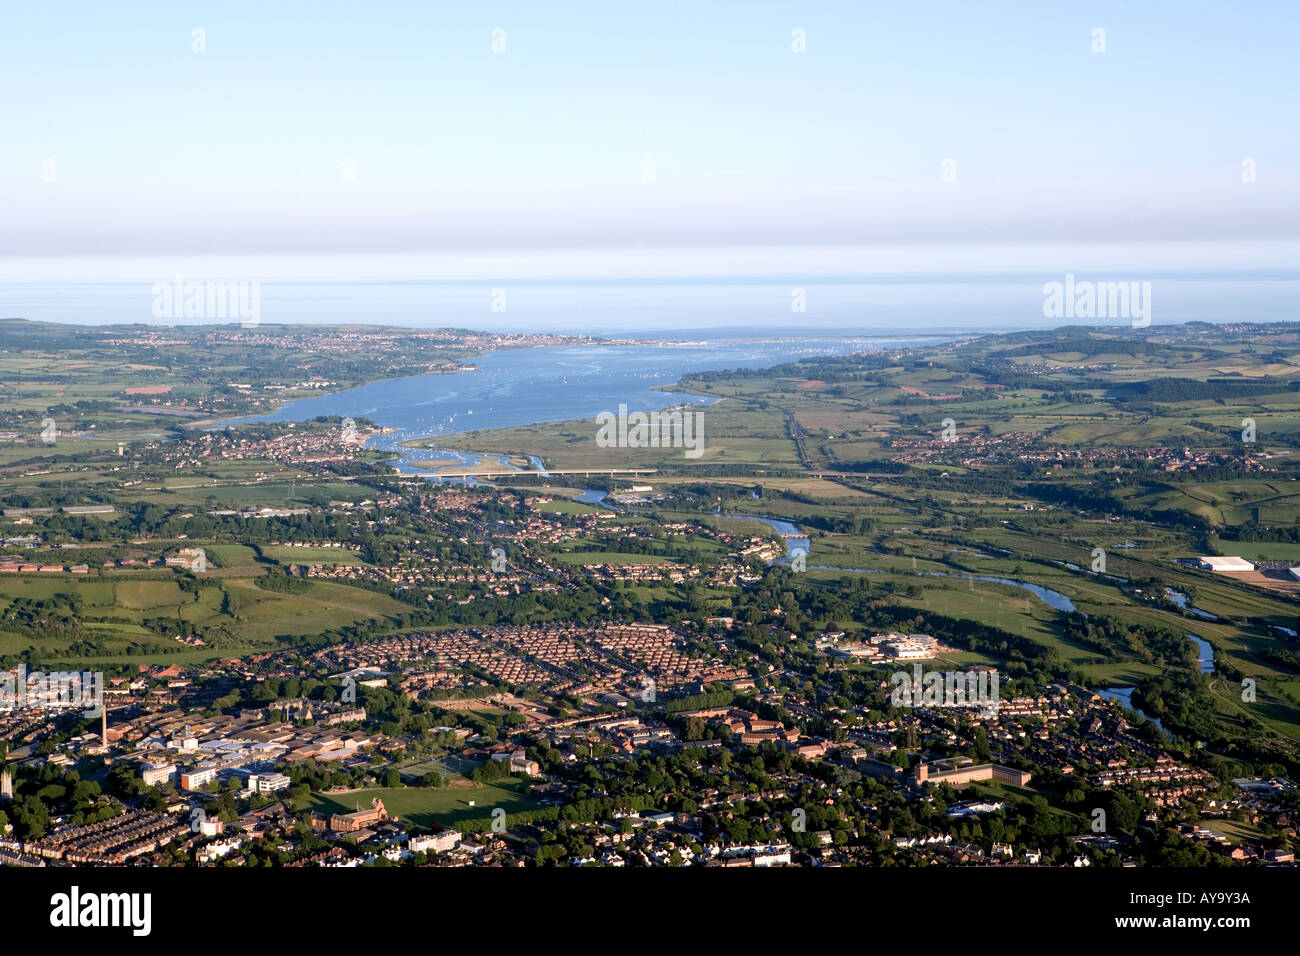 Aerial view of the City of Exeter Exmouth and Exe Estuary from a hot air balloon - Stock Image